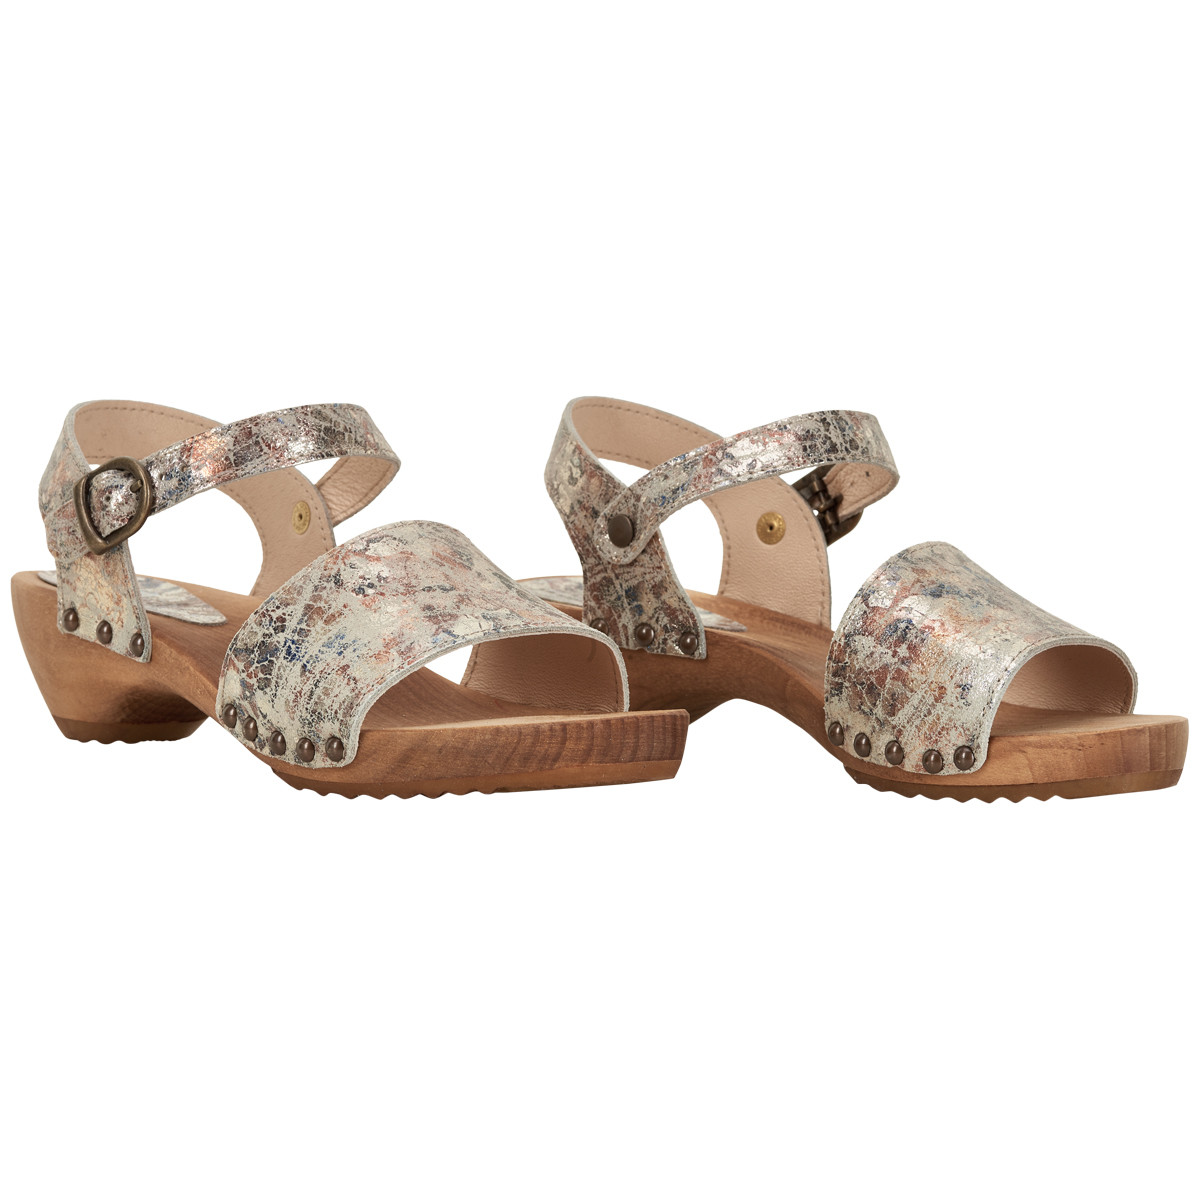 SANITA CARRARA CLOGS 459460 14